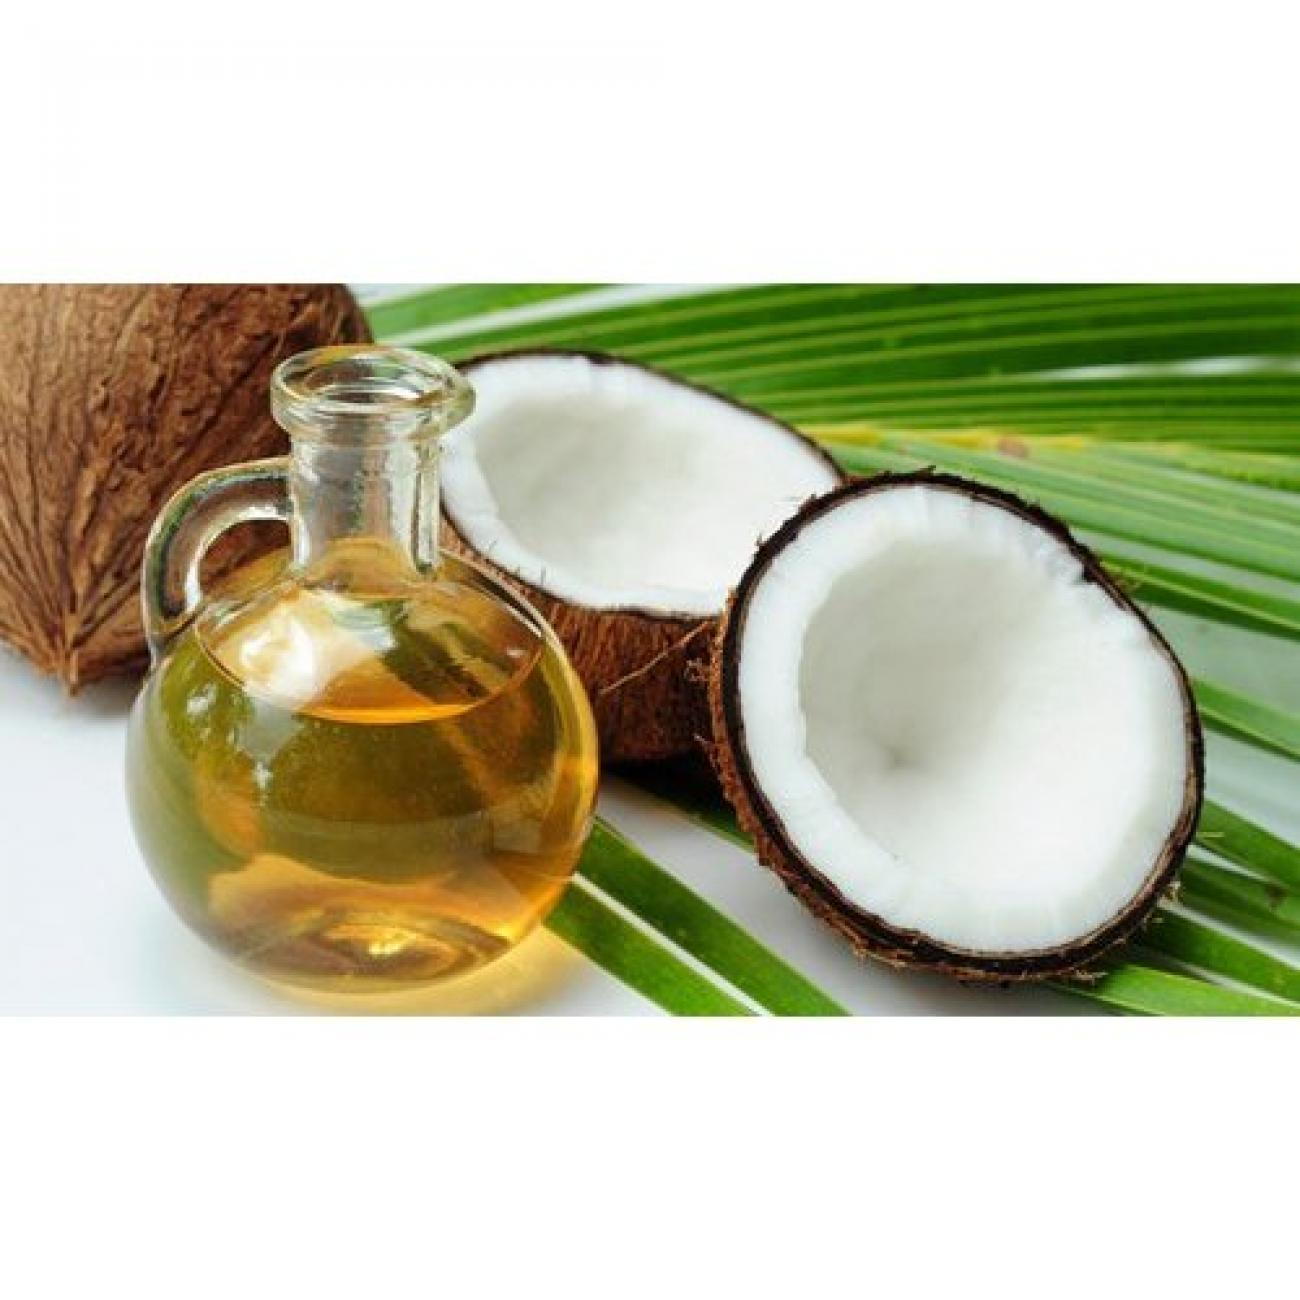 Blendspure Pure Coconut Oil